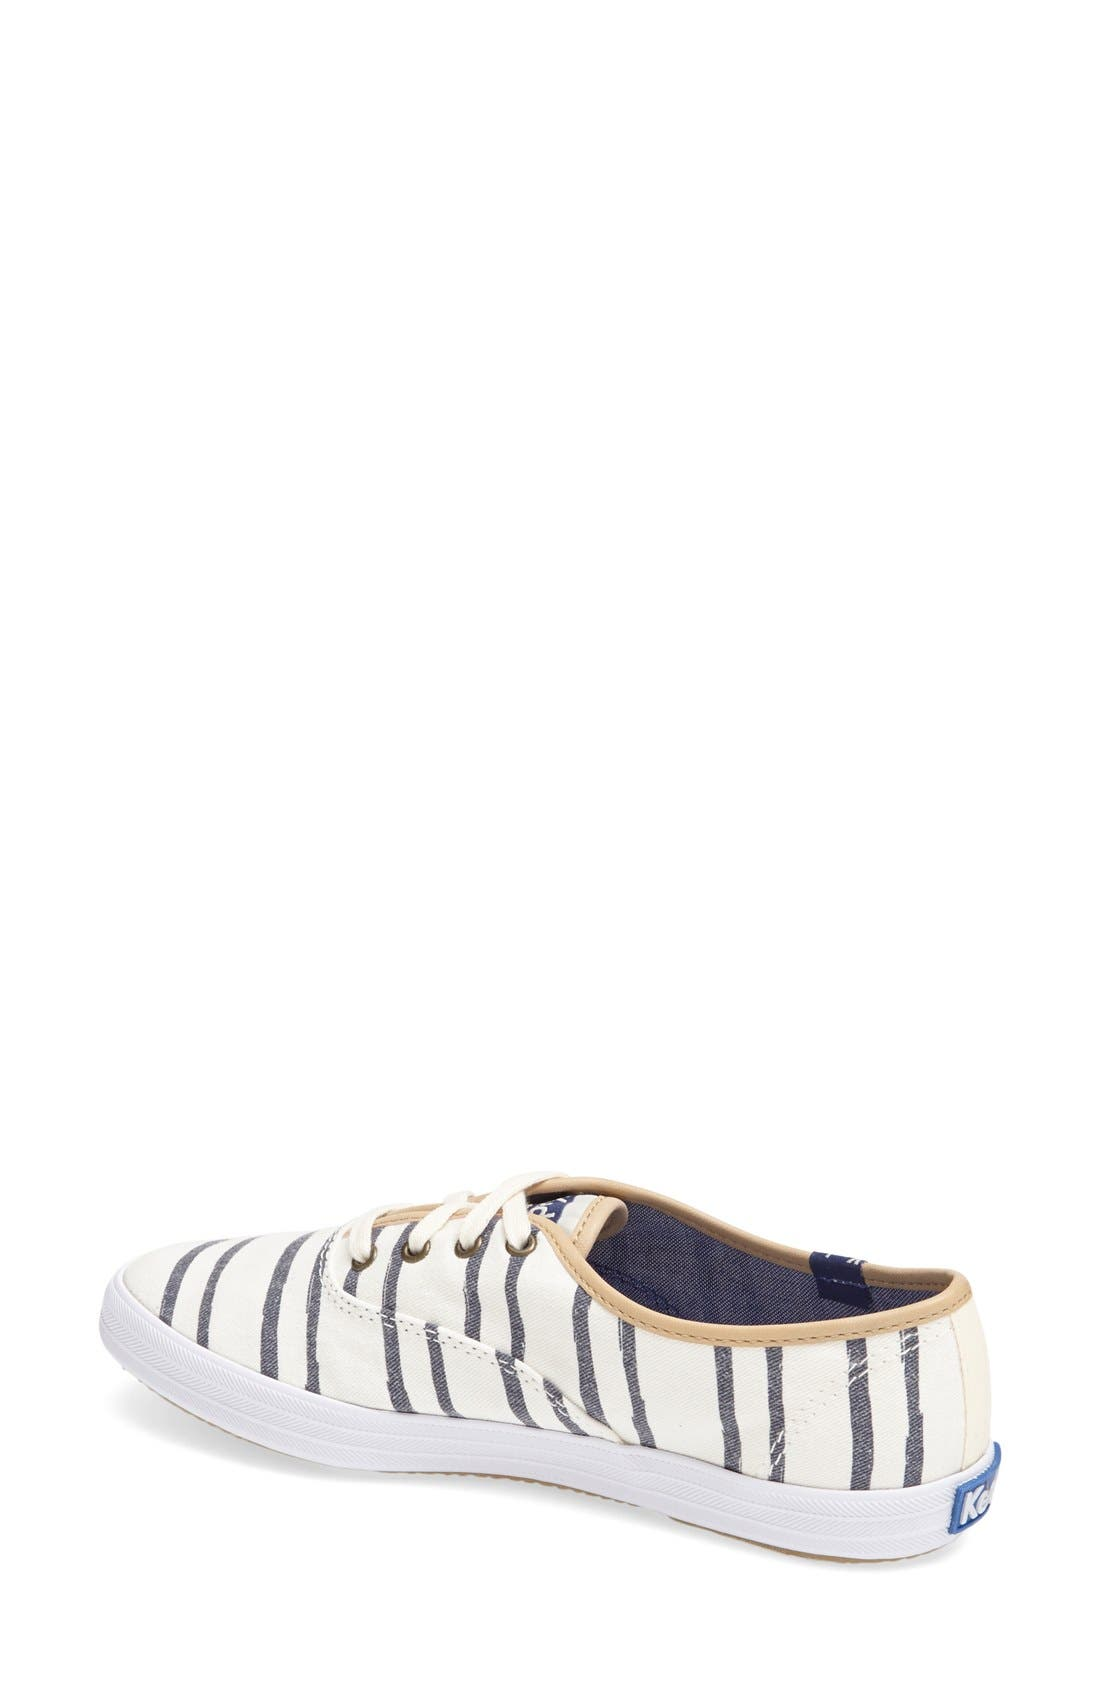 Alternate Image 4  - Keds® 'Champion - Washed Beach Stripe' Sneaker (Women)